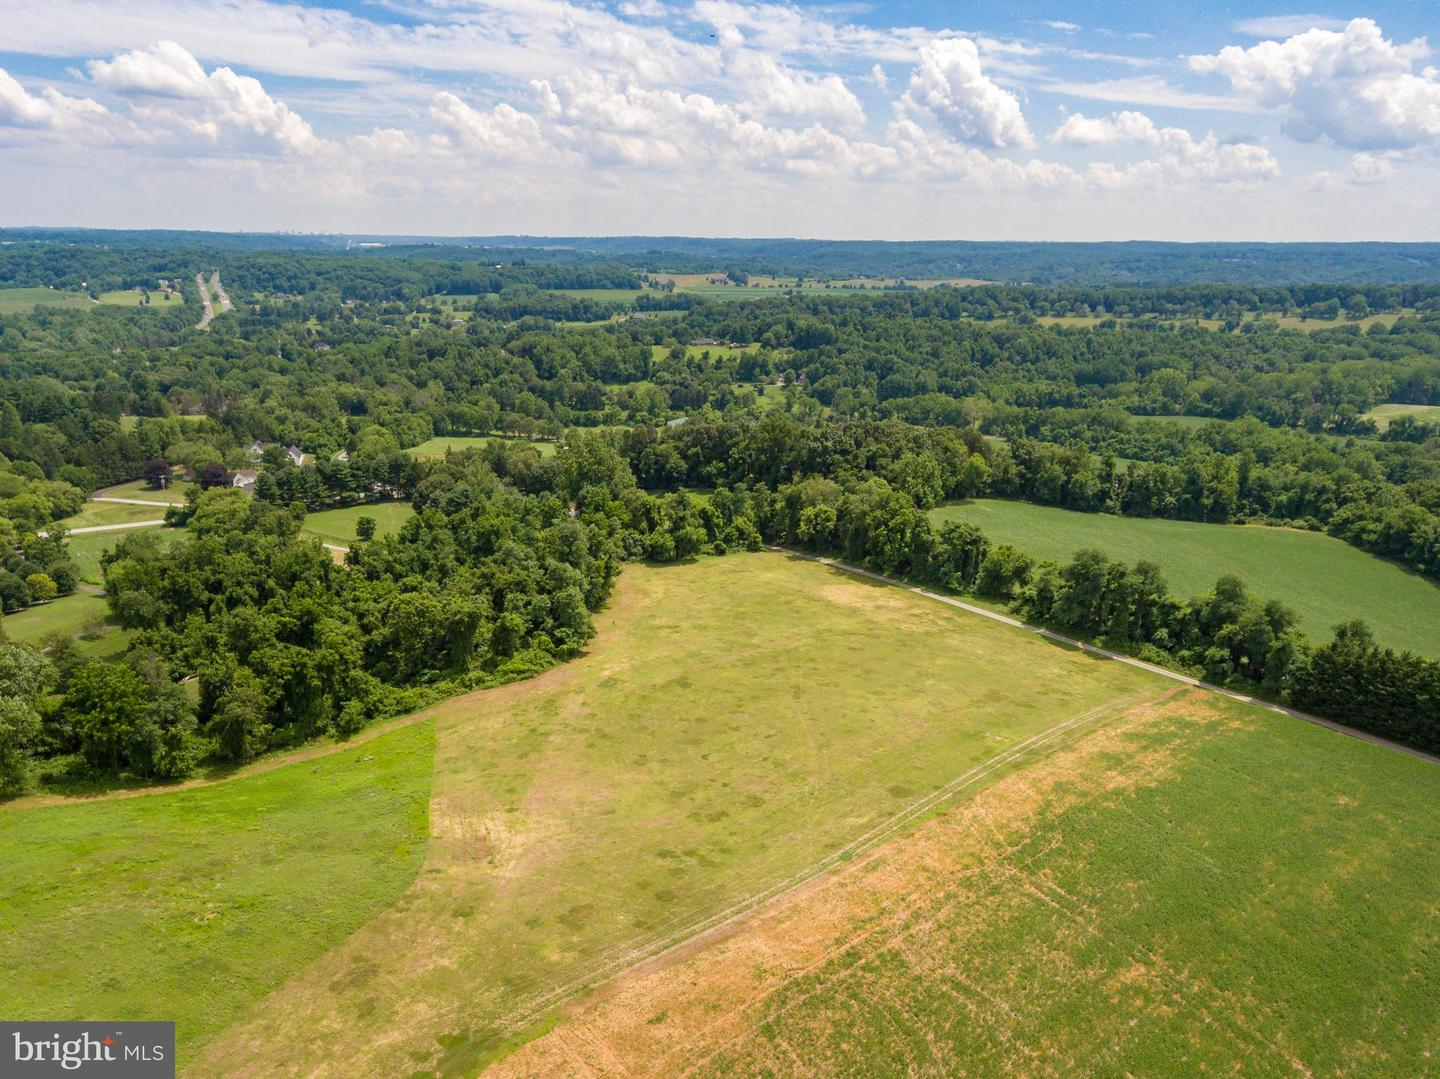 Land for Sale at Sparks Glencoe, Maryland 21152 United States